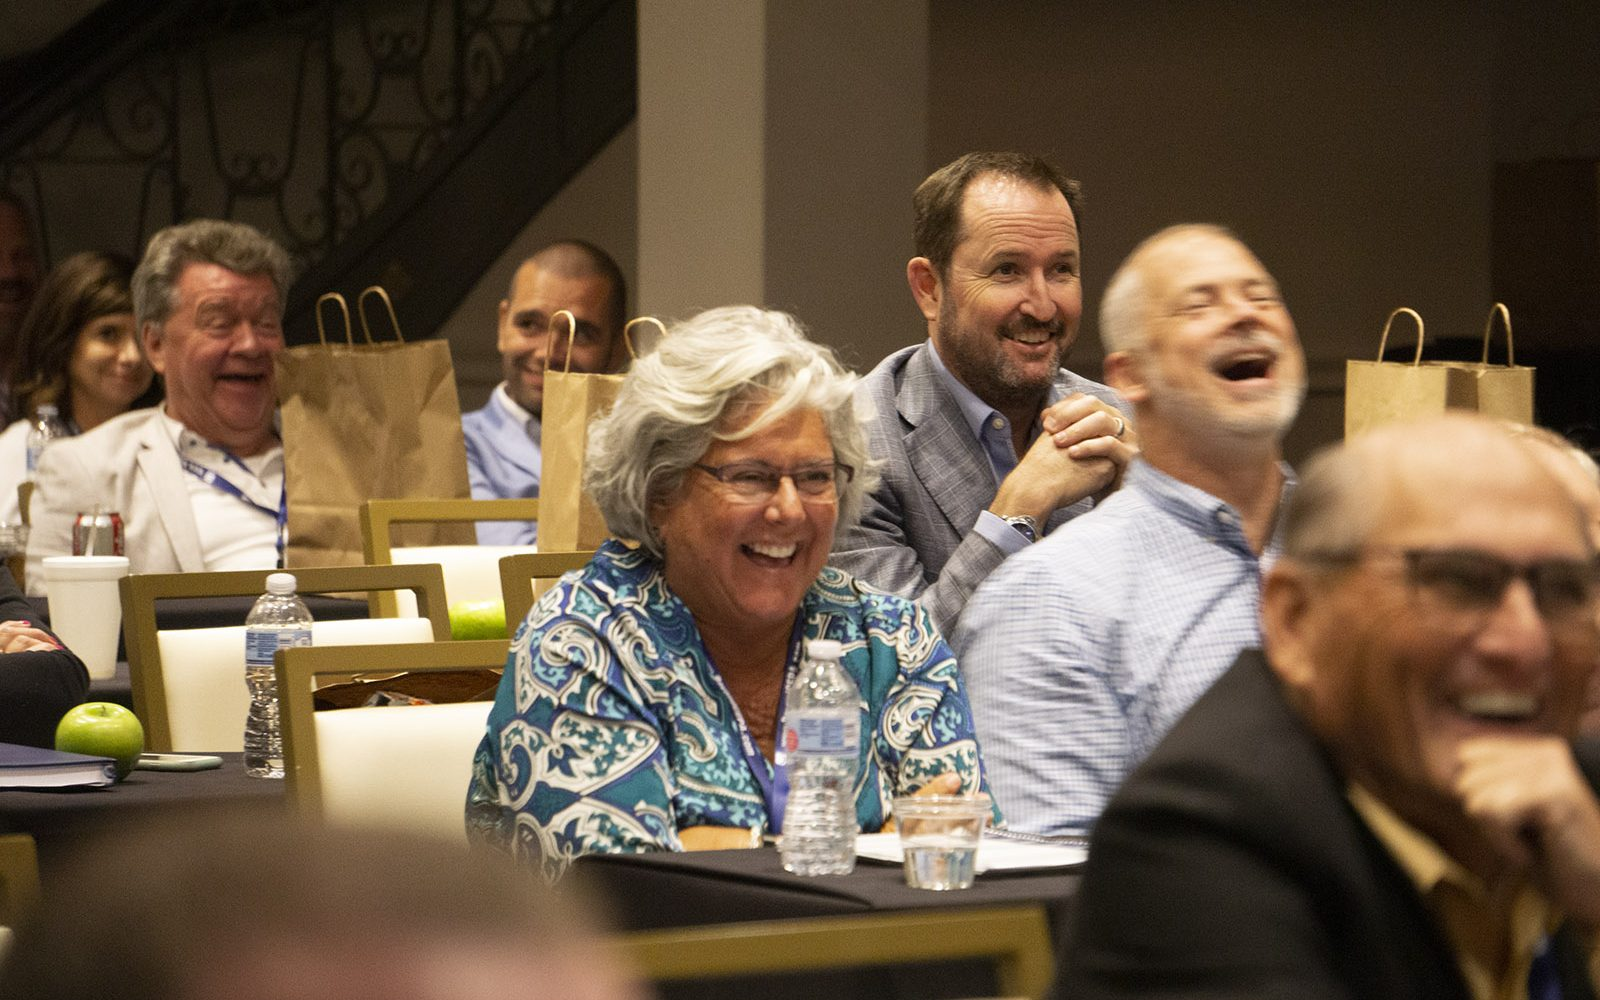 slideshow_attendees-laughing